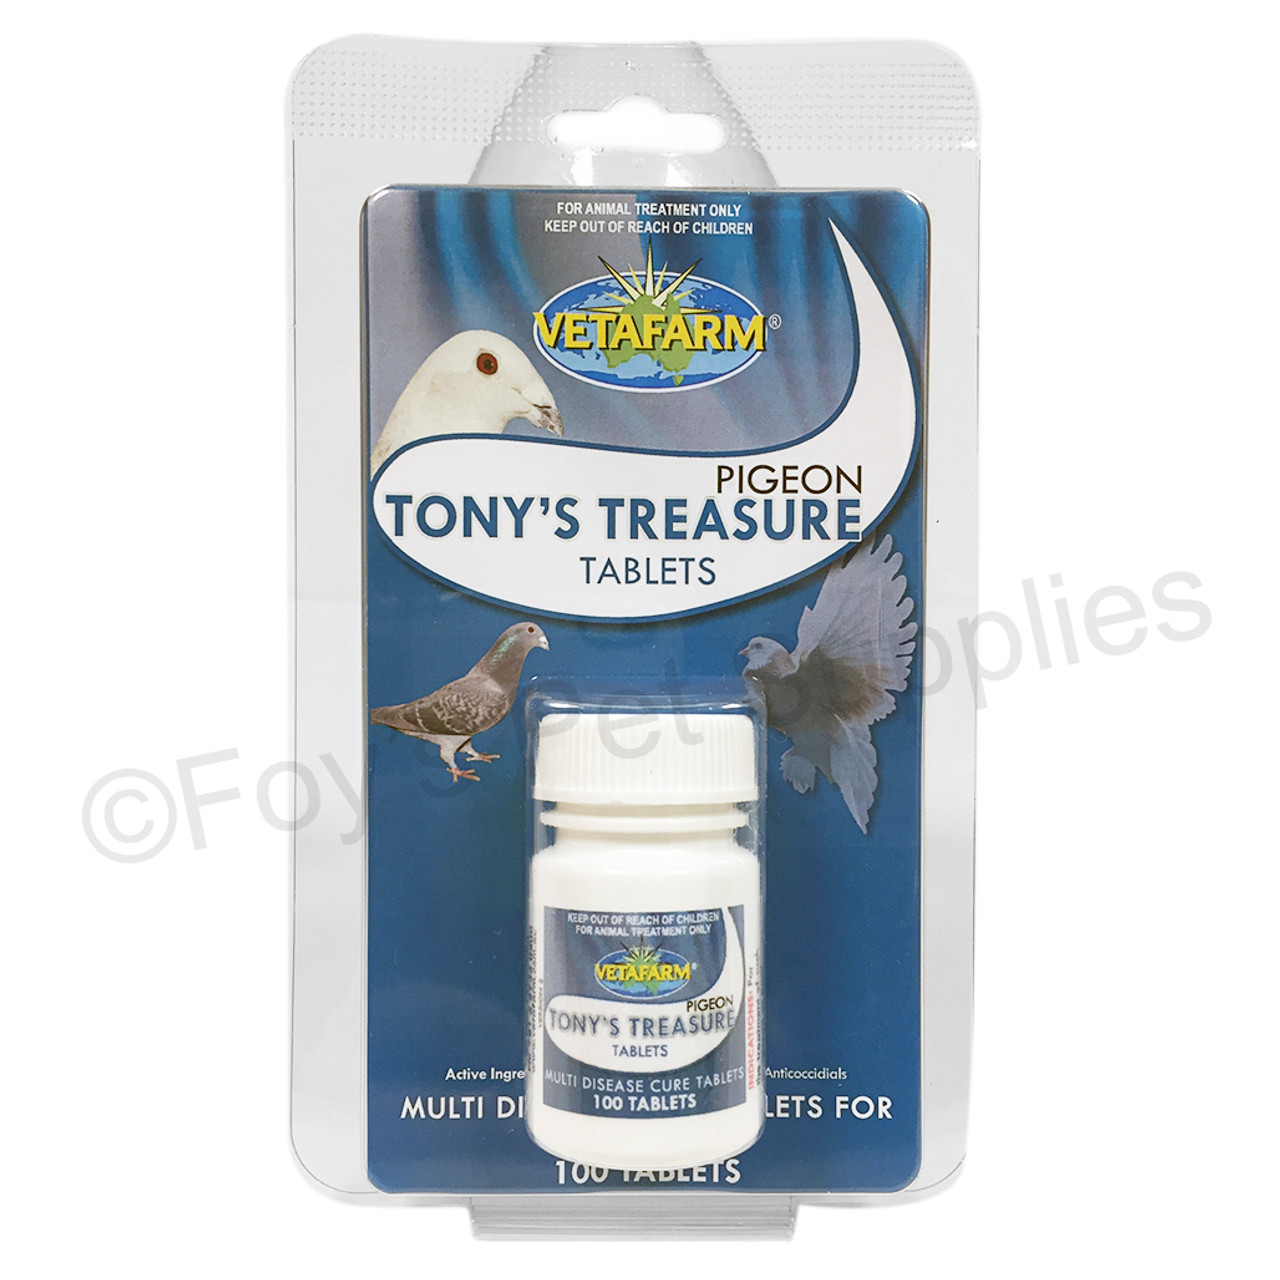 34 tony's treasure tablets 100